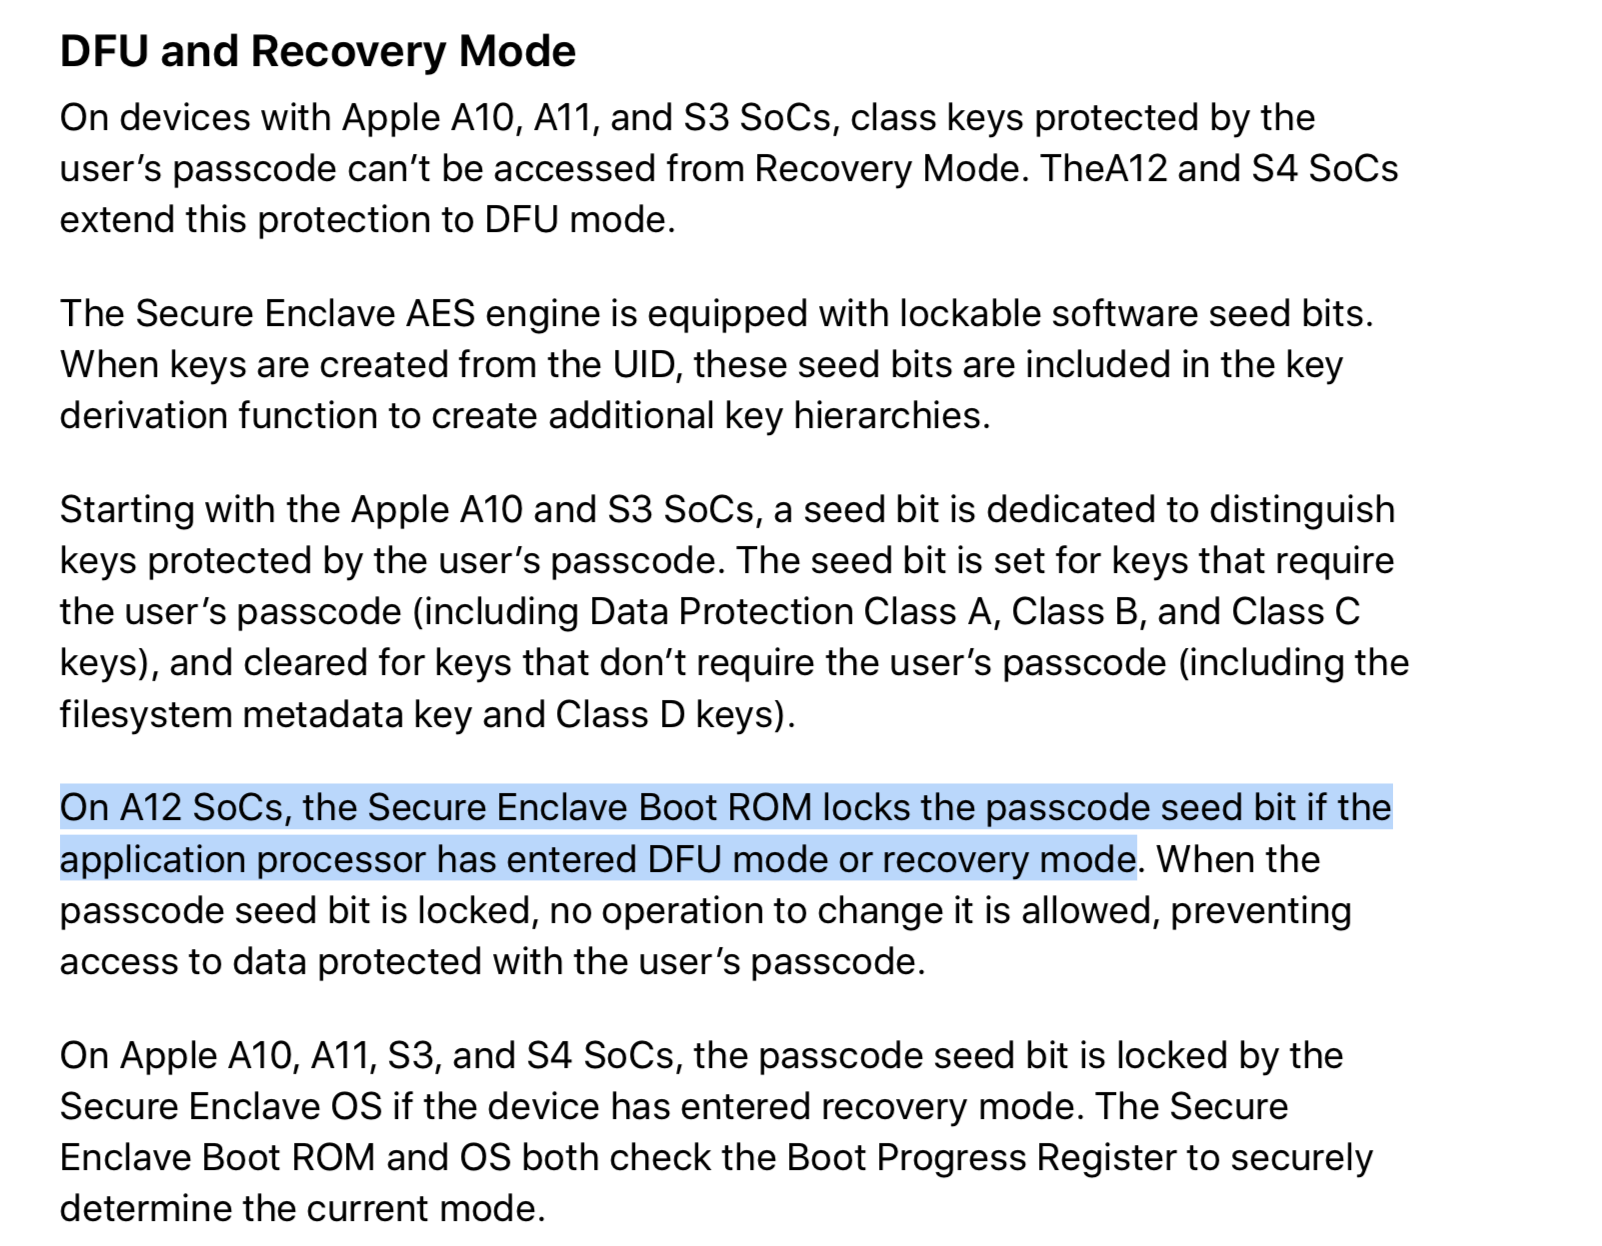 4 New Security Features For Apple A12 And S4 That Weren't